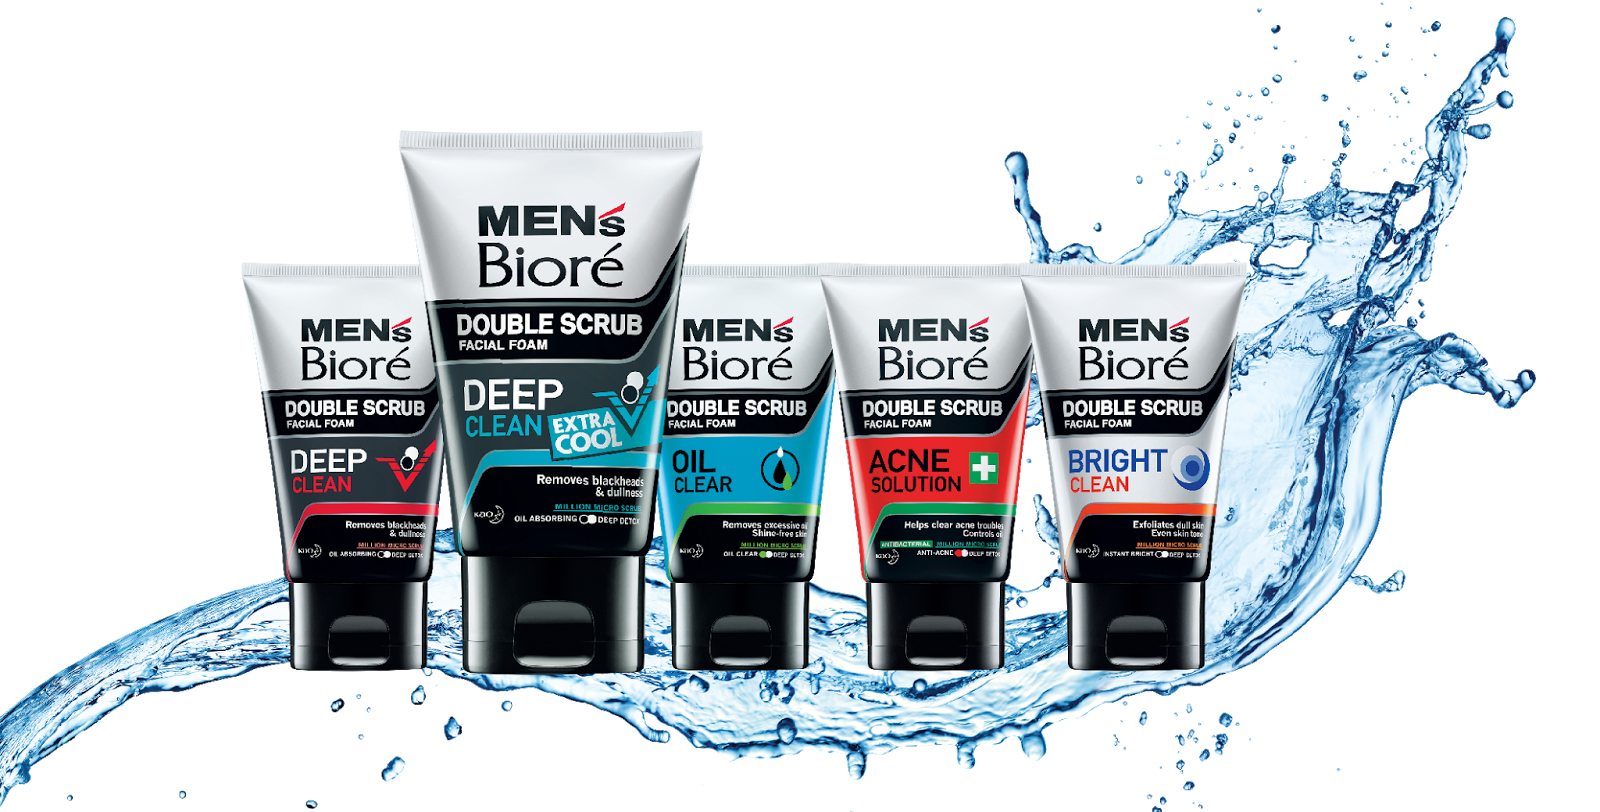 Mens Biore Double Scrub Group Shot with water splash